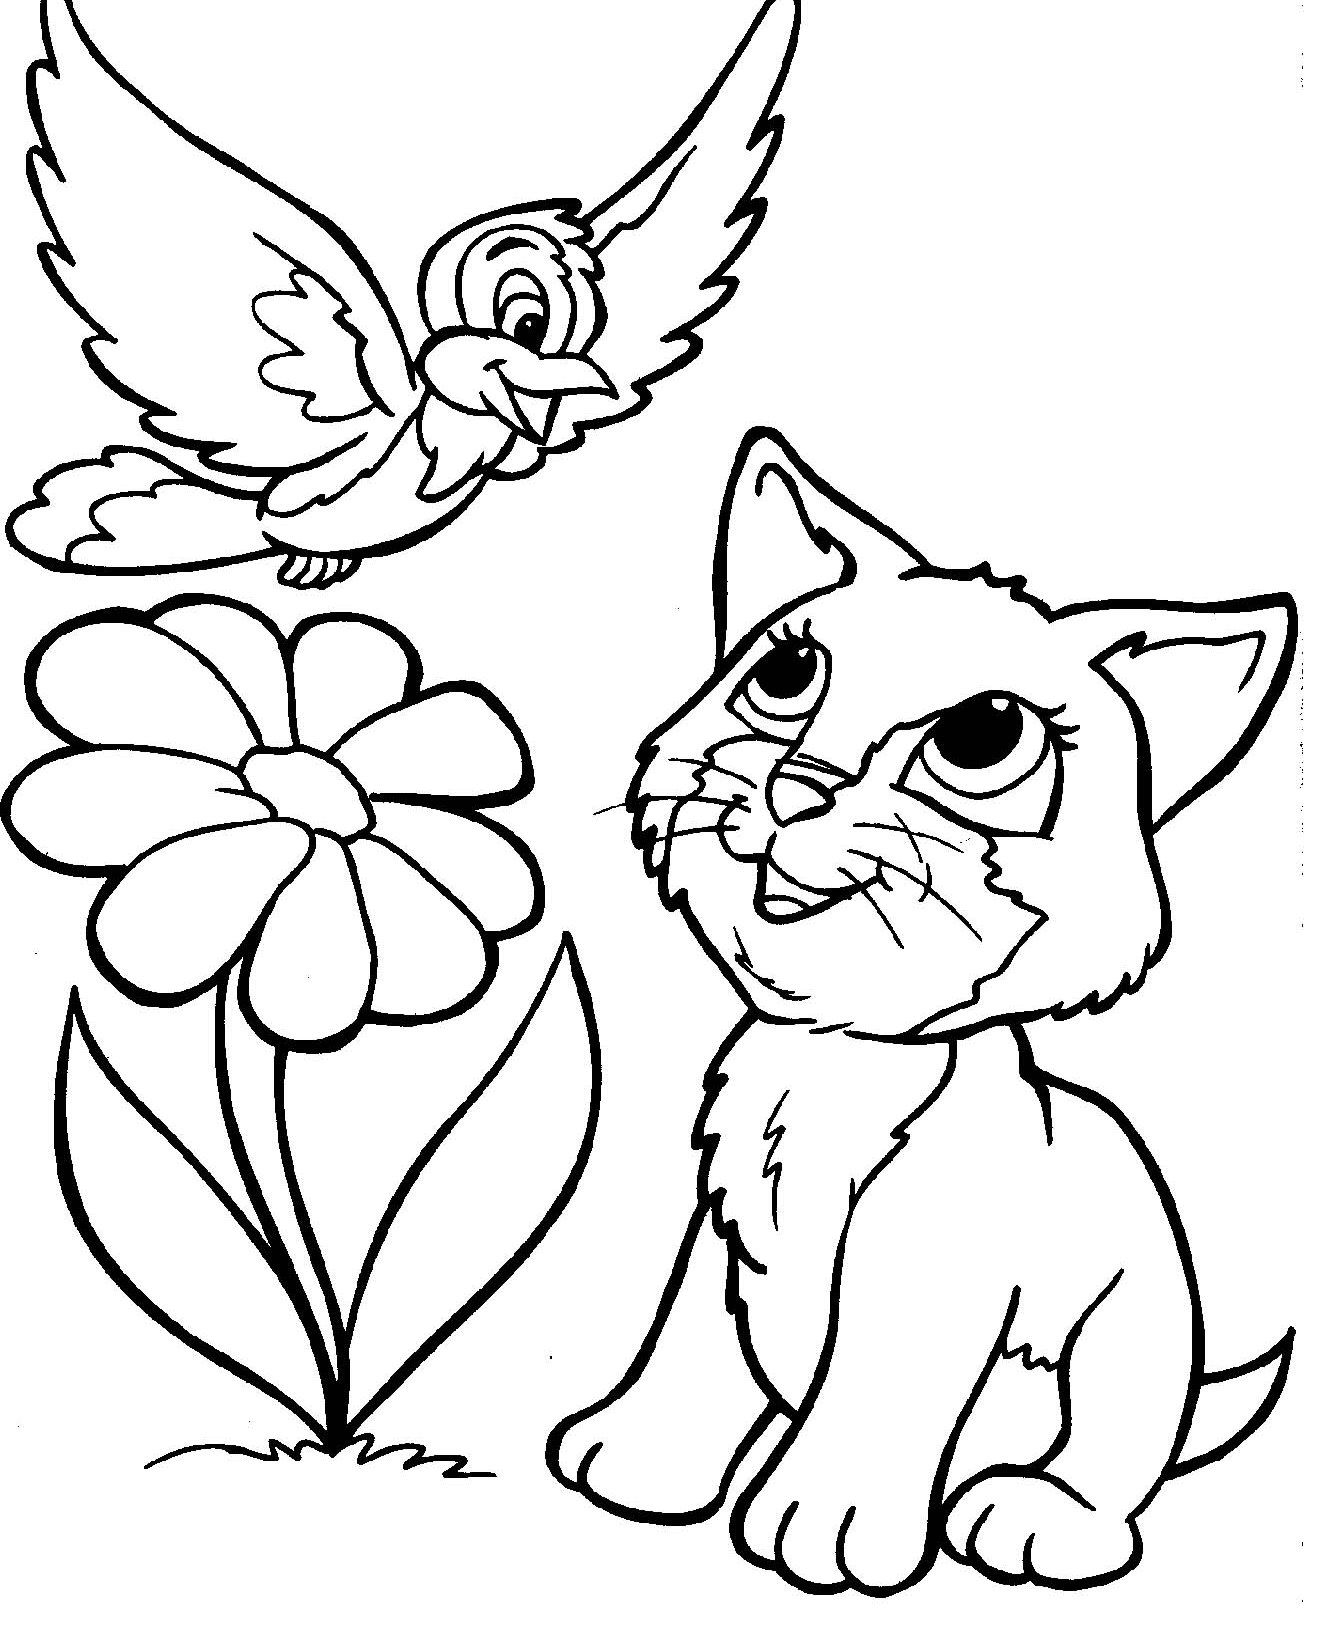 Cute Cats And Bird Coloring Pages For Kids Printable